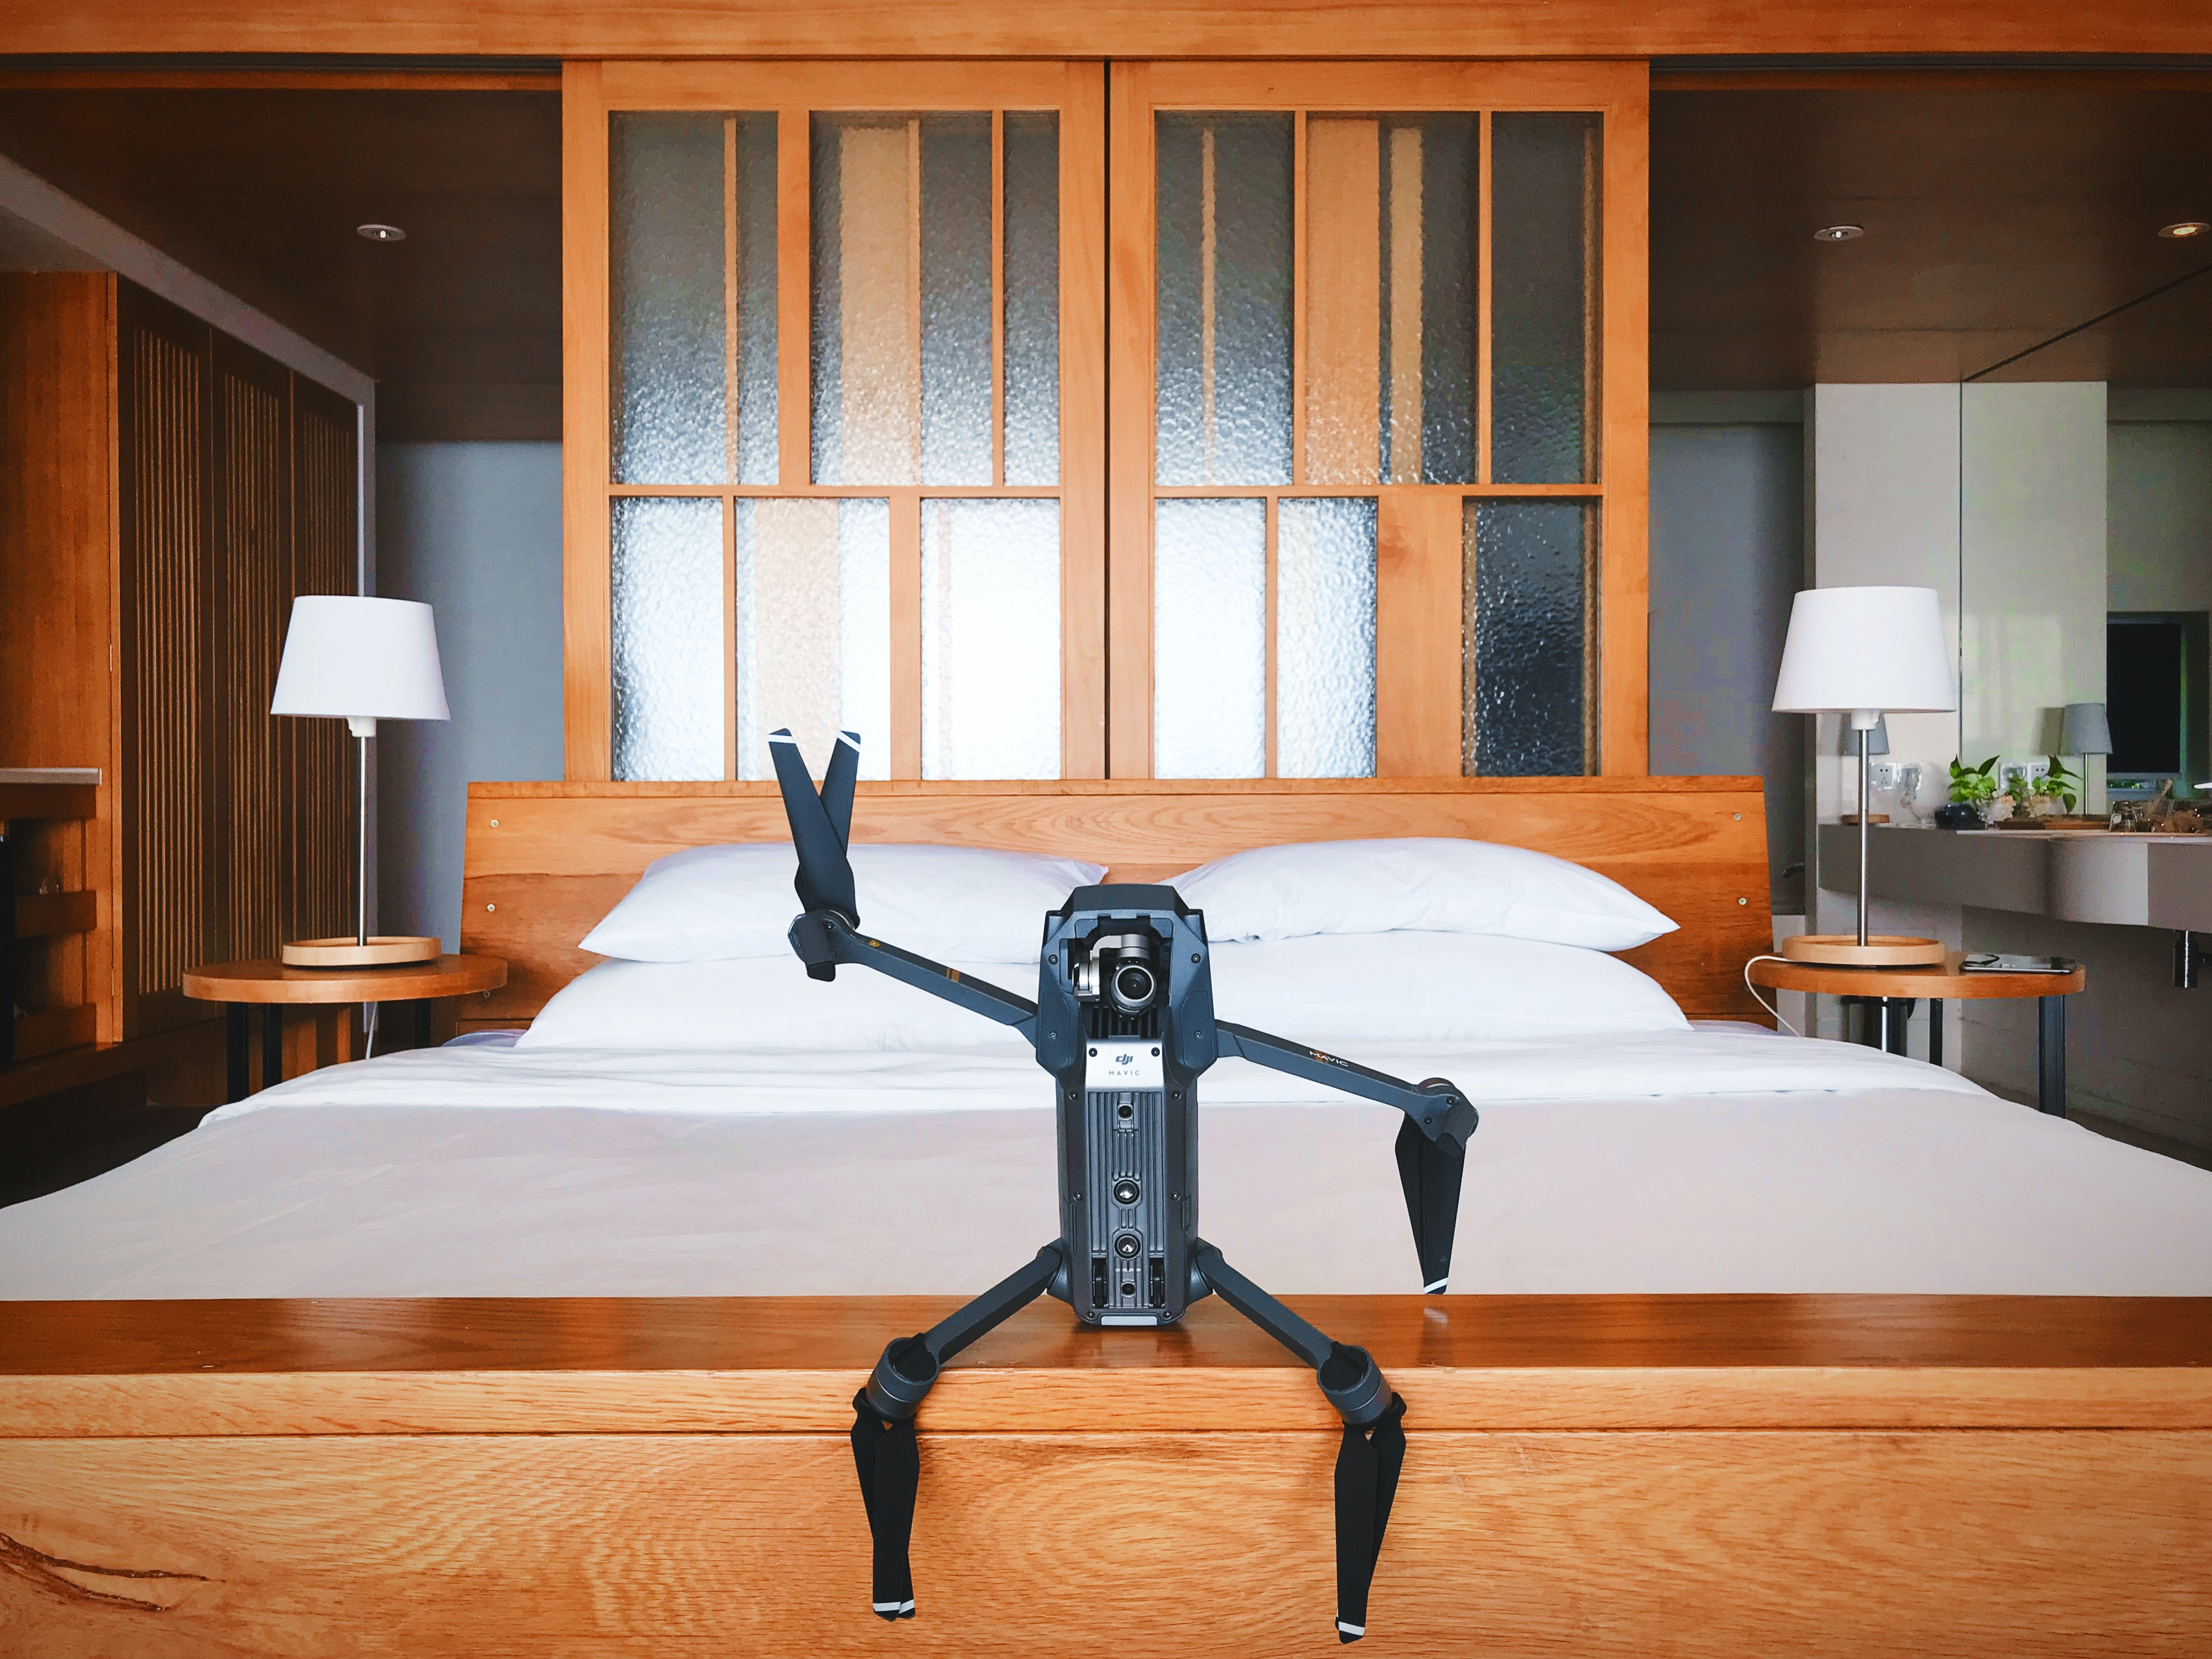 black quadcopter drone on brown wooden table